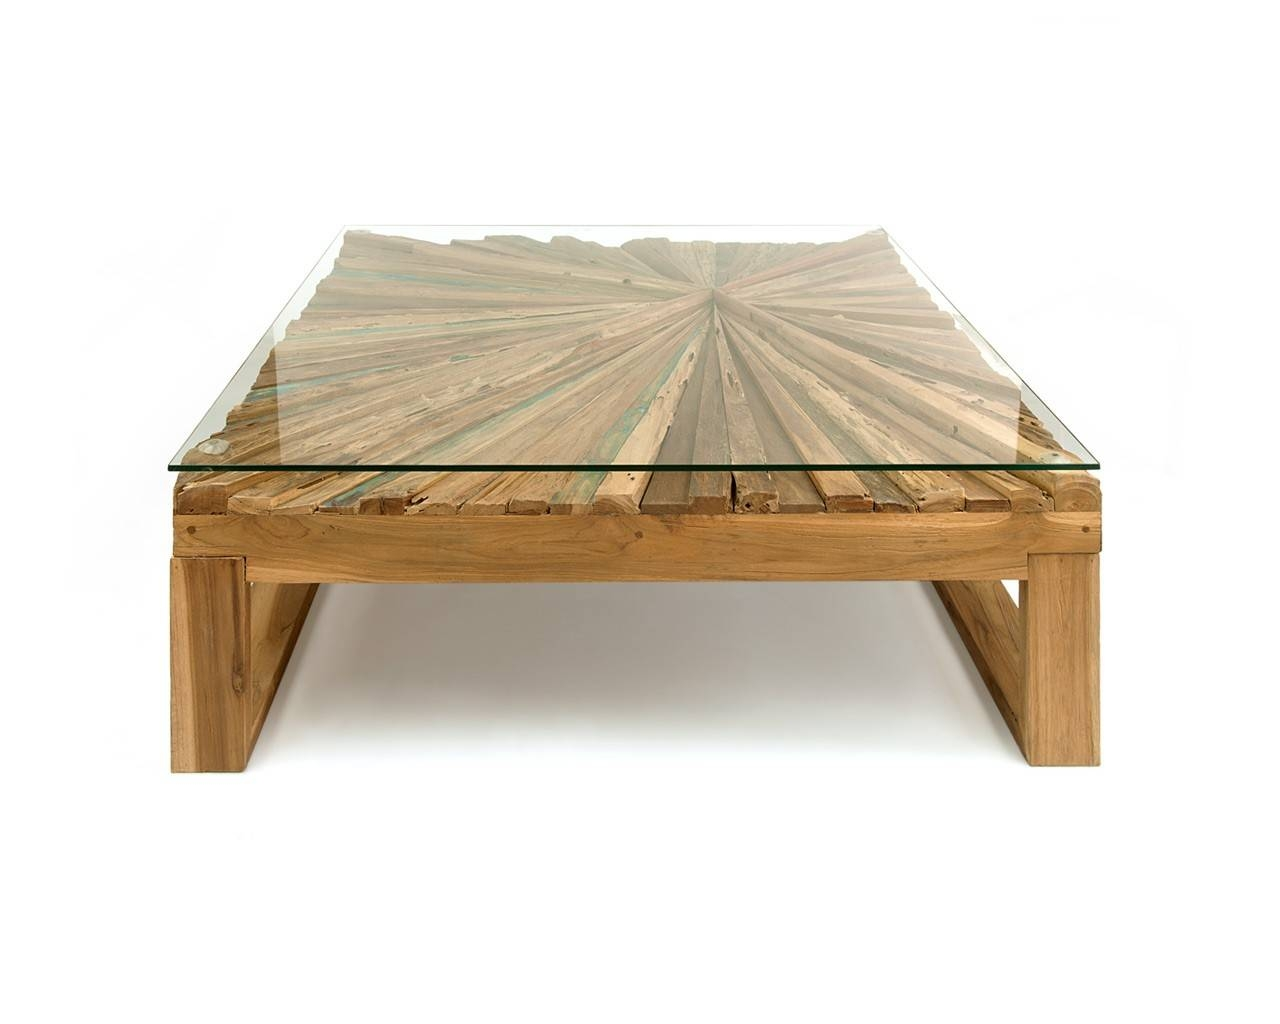 Rustic Glass Coffee Table – Rustic Coffee Table Pier 1, Rustic pertaining to Wooden And Glass Coffee Tables (Image 27 of 30)